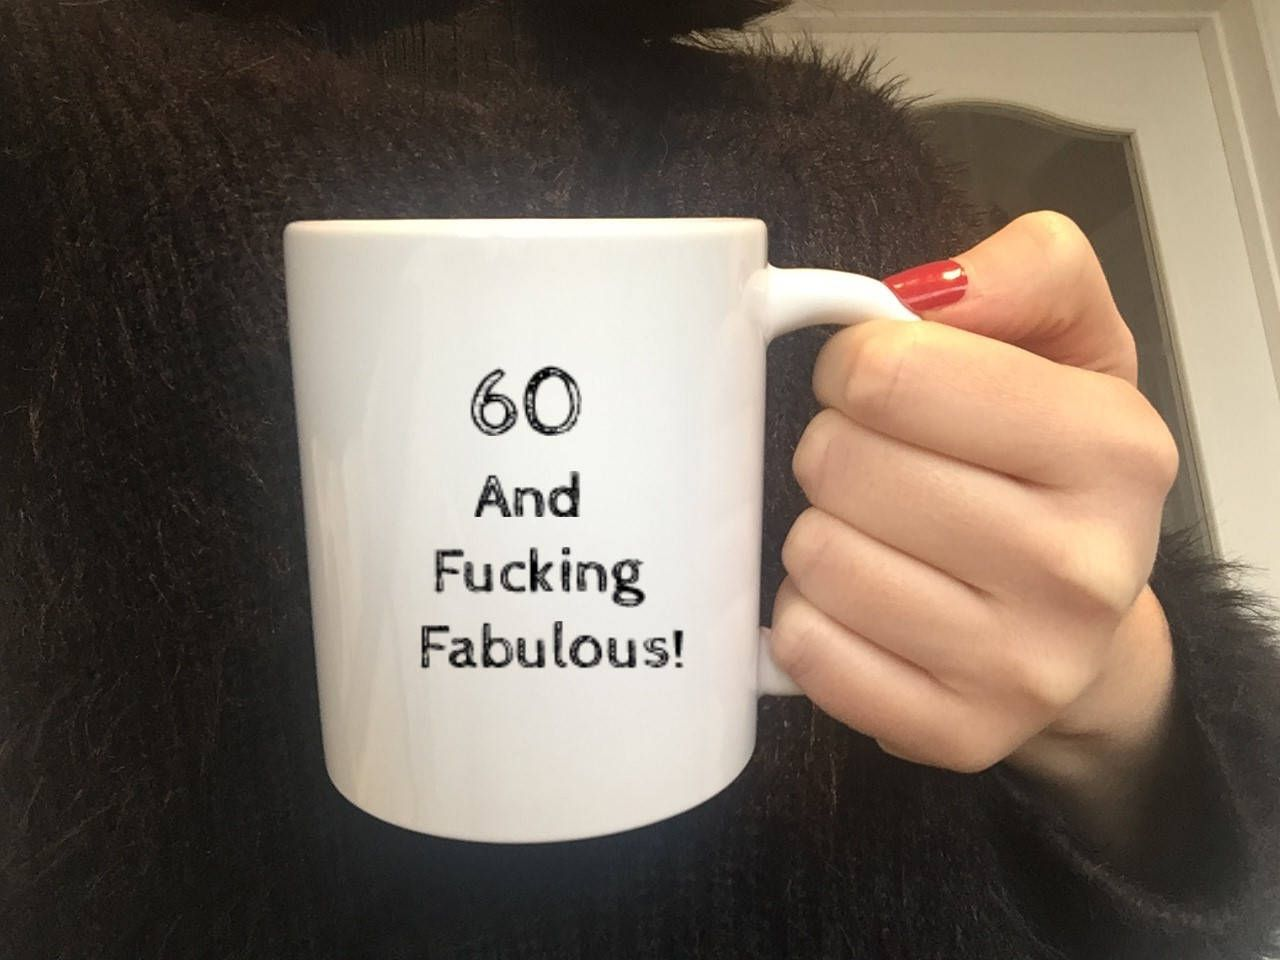 60th Birthday Gift60 And Fucking Fabulous Mug60th Happy Birthday60th Ideas60th Gift For Her Him60th